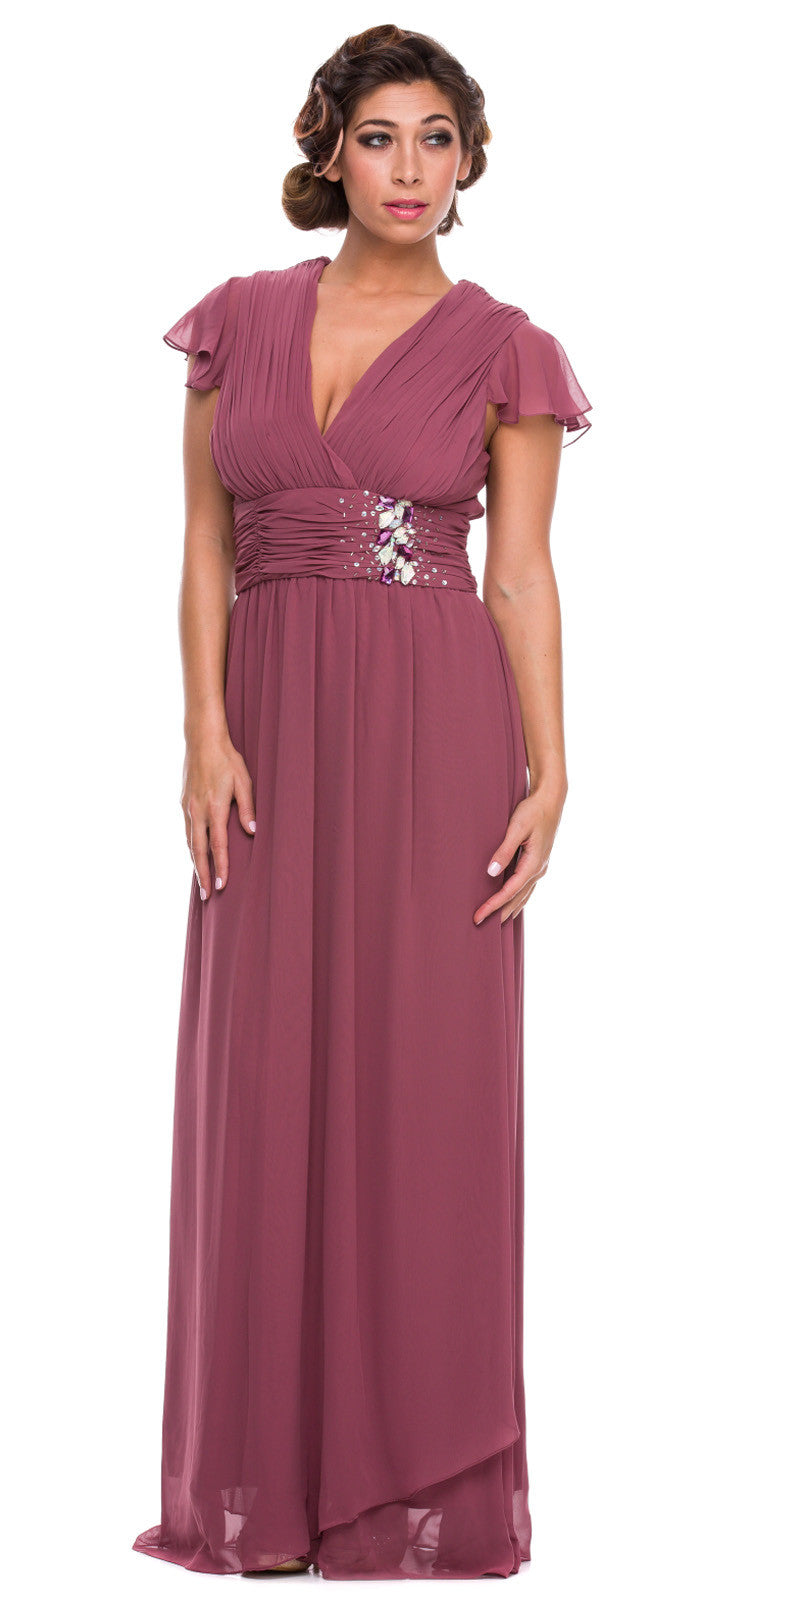 Long Mother of Bride Dress Rosewood V Neck Short Sleeves